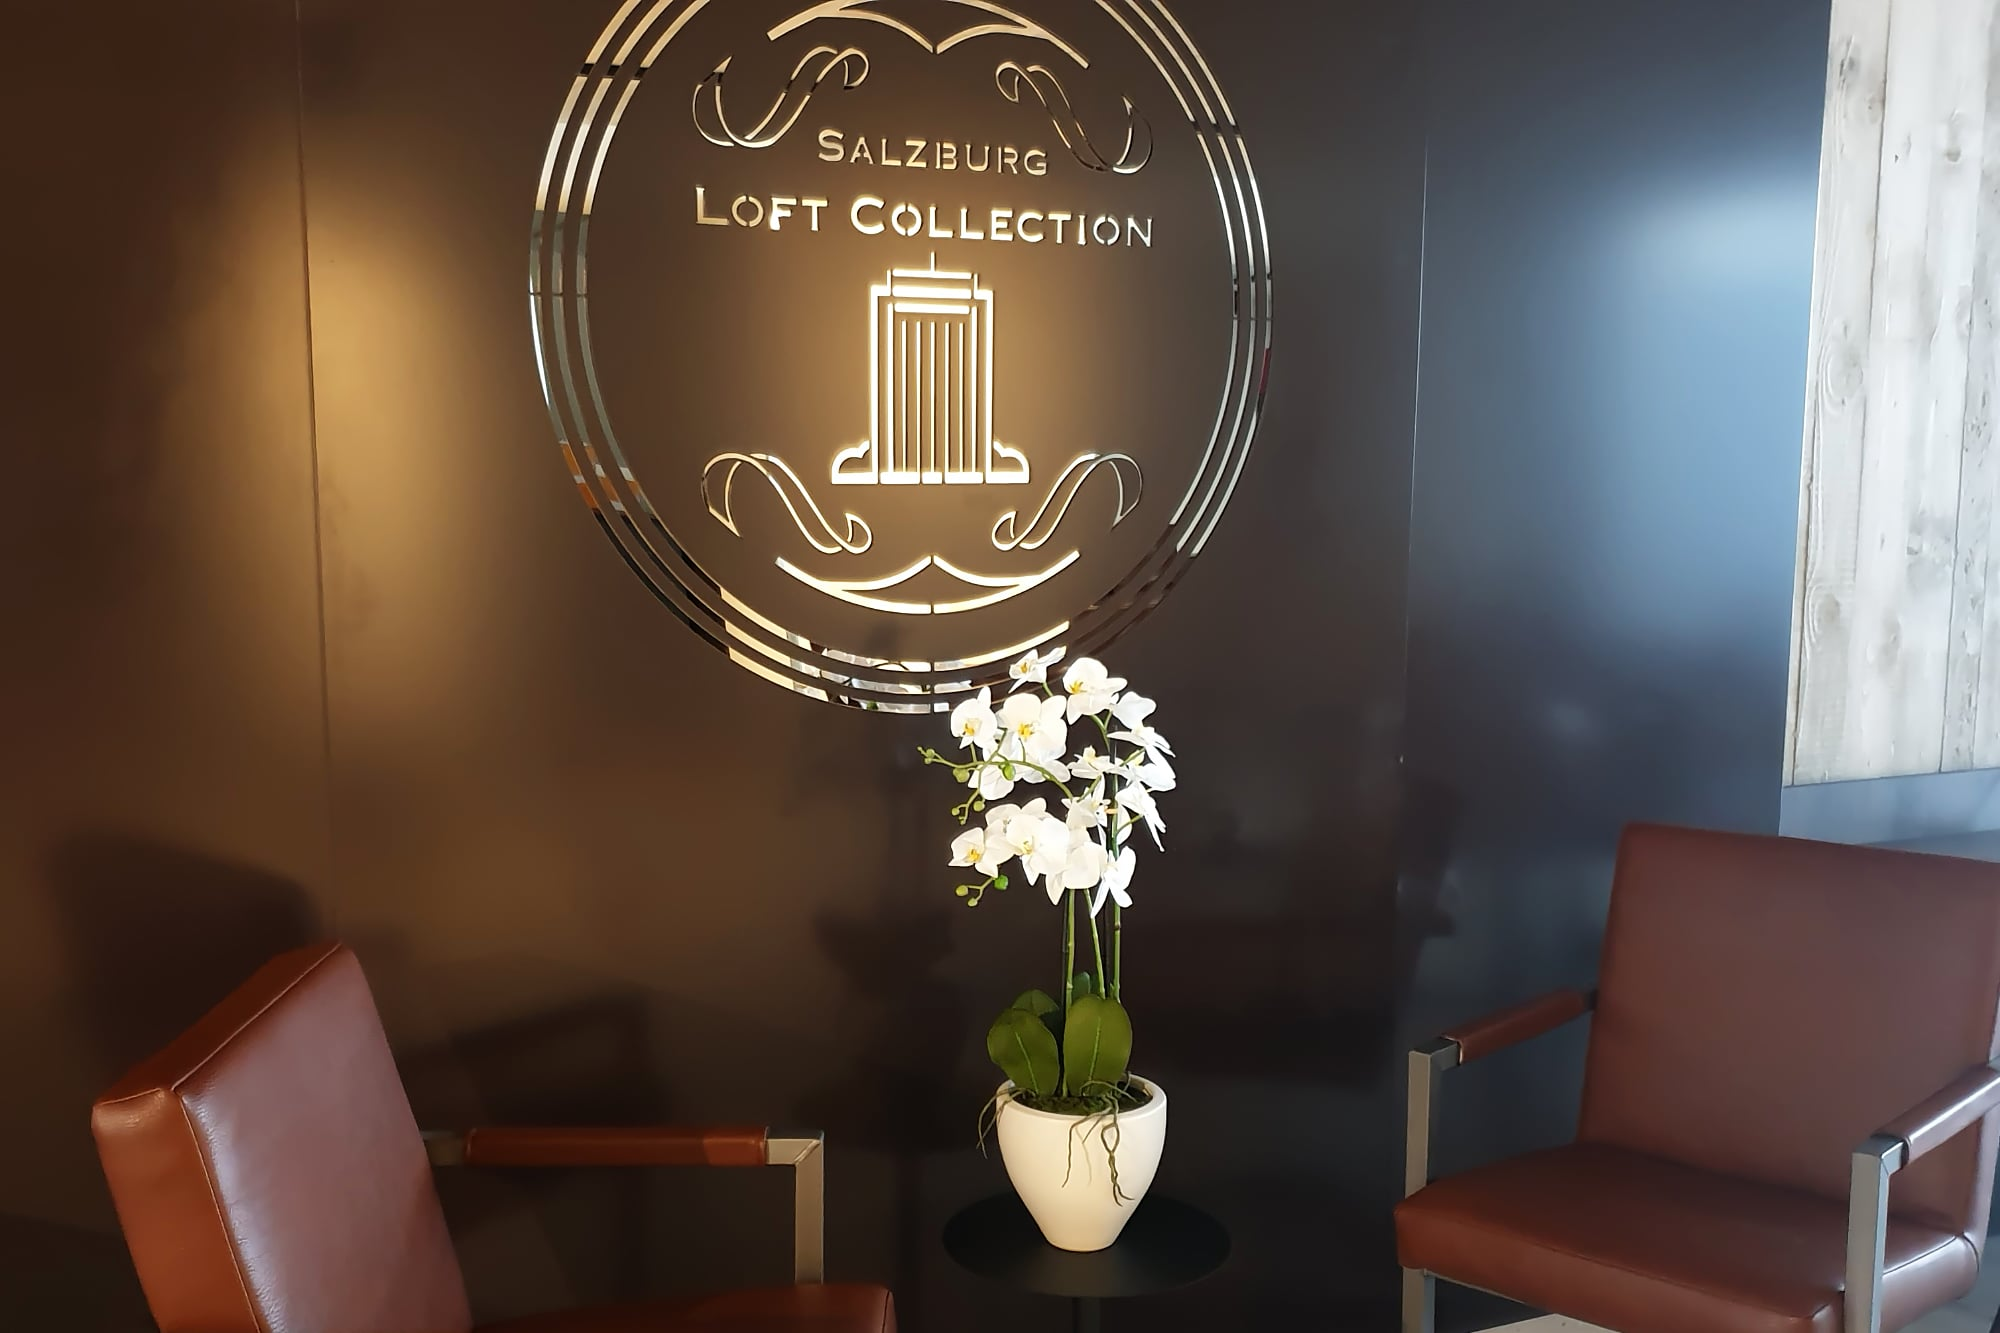 Loft Collection Mirabell